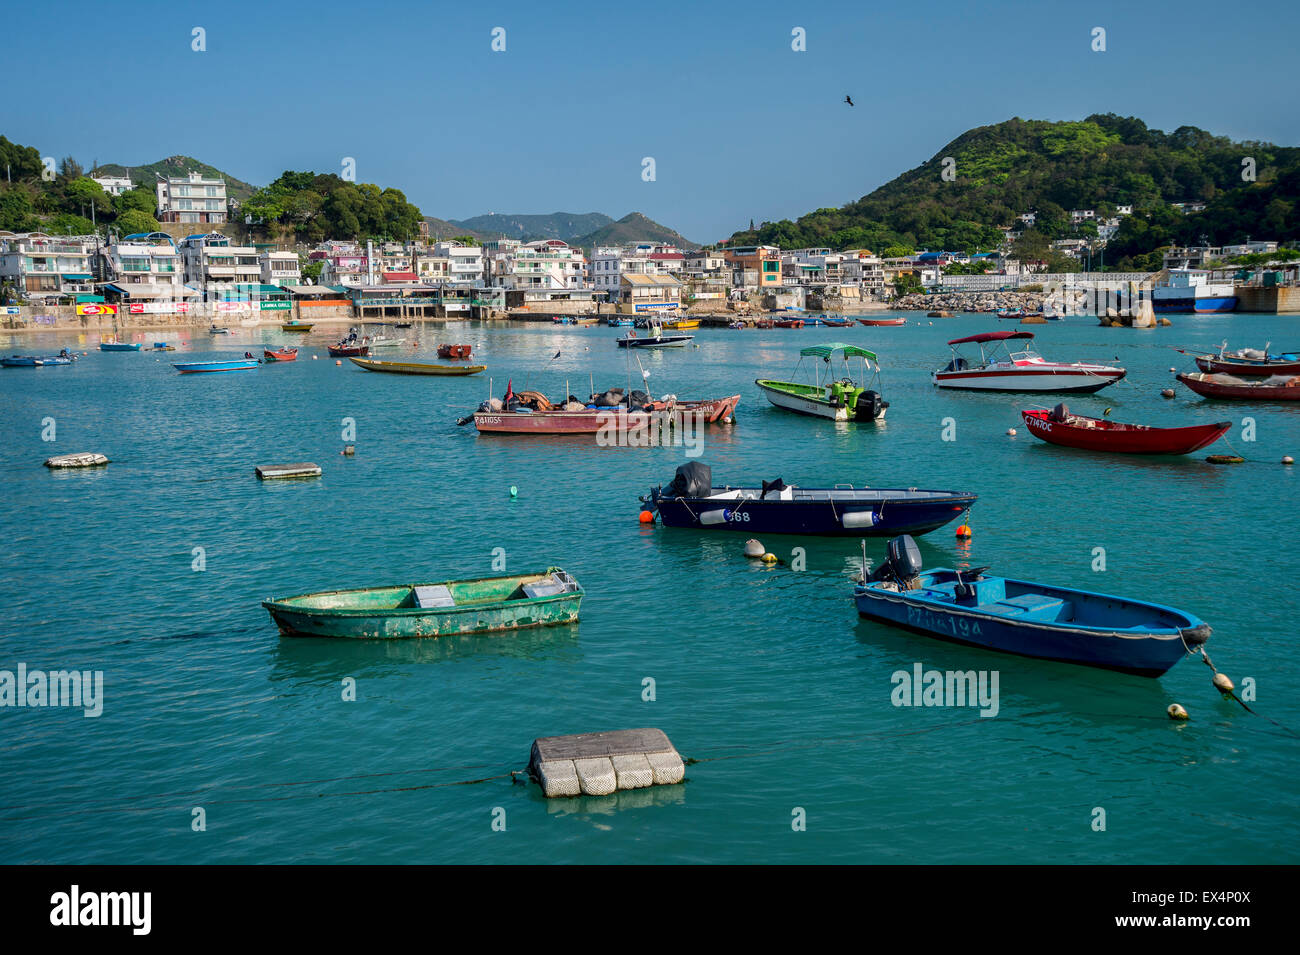 Harbour and boats in Yung Shue Wan on Lamma Island, Hong Kong - Stock Image